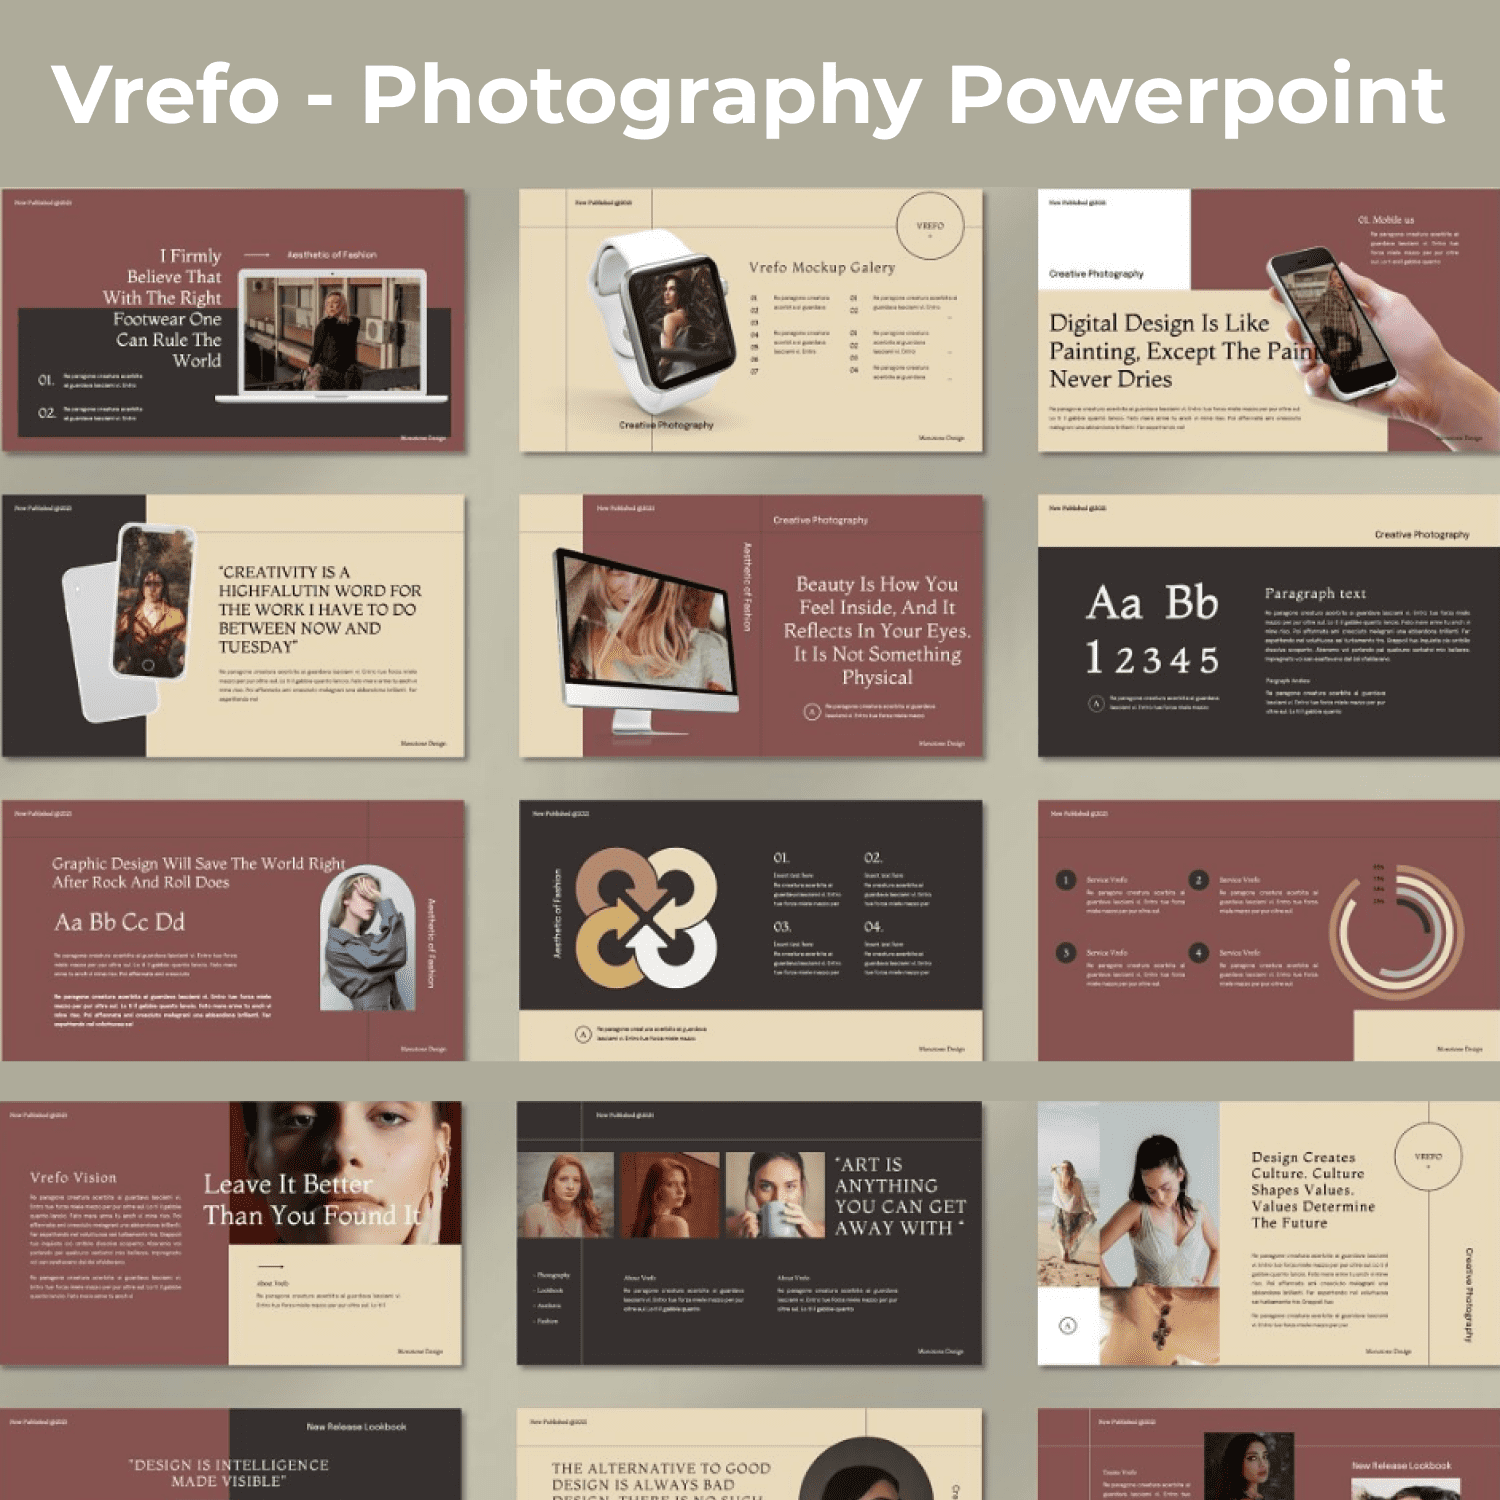 Vrefo - Photography Powerpoint main cover.